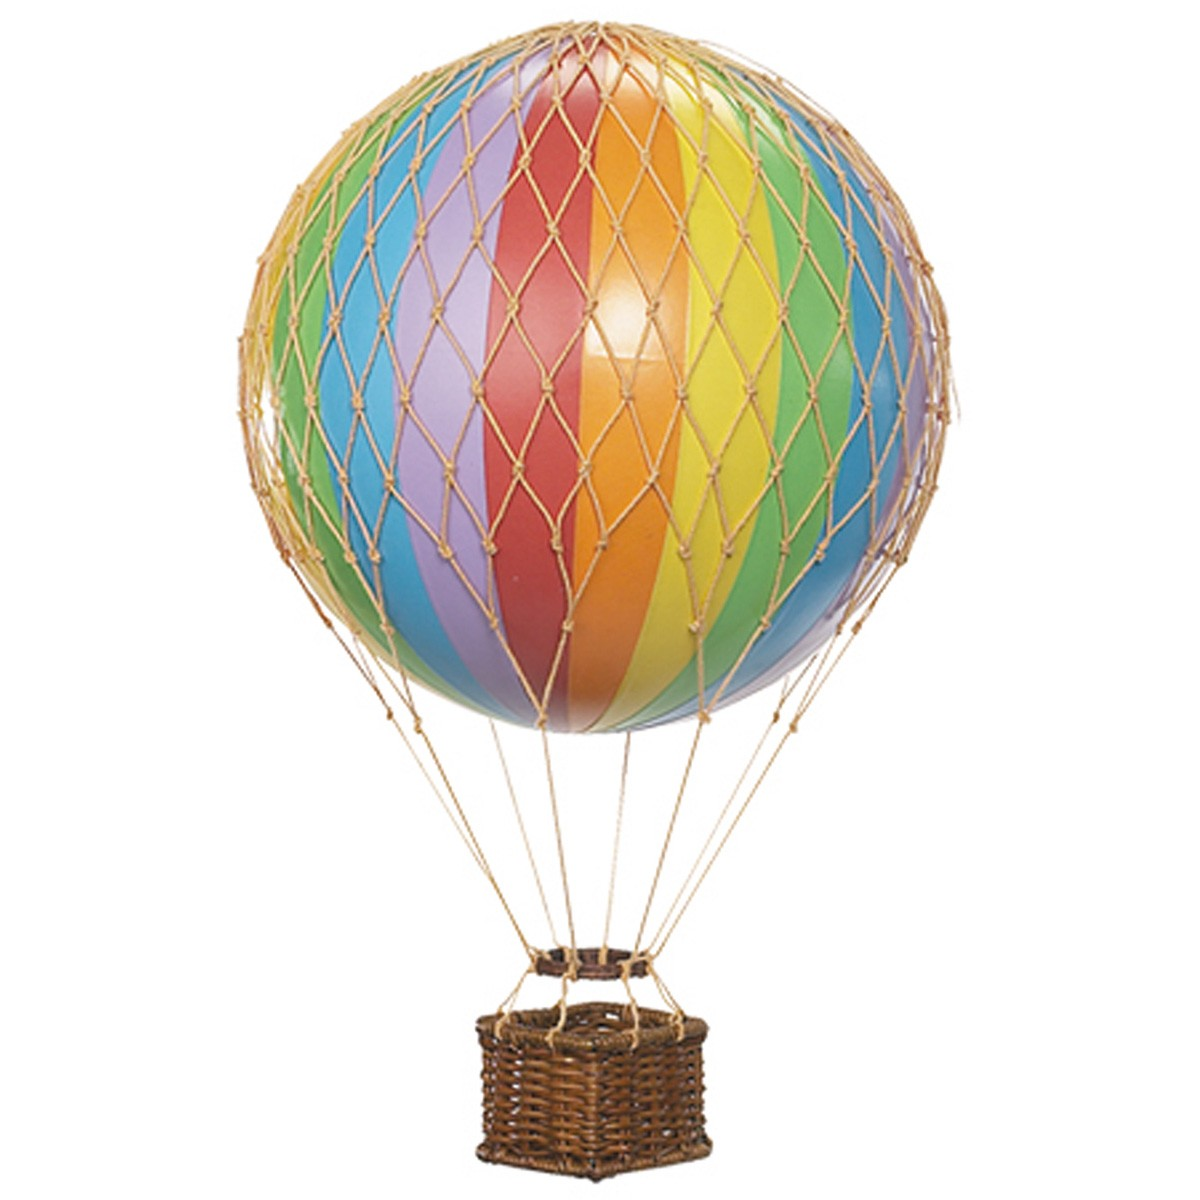 Floating The Skies Hot Air Balloon Model, Rainbow